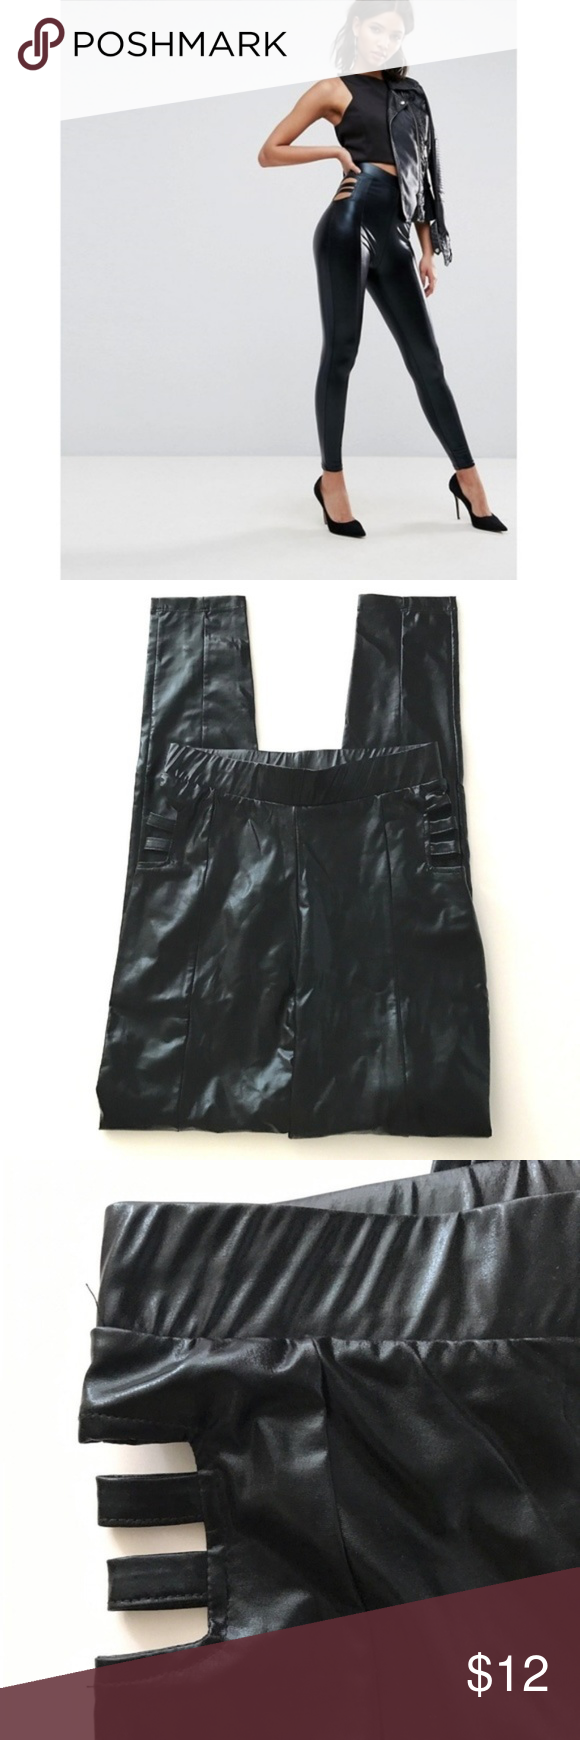 ff6c7915674fb4 Asos Legging Wet Look with Cut Out Detail ASOS Women's Legging, Black Size  6 Wet Look with Cut Out Detail Pre-Owned, Good Condition.